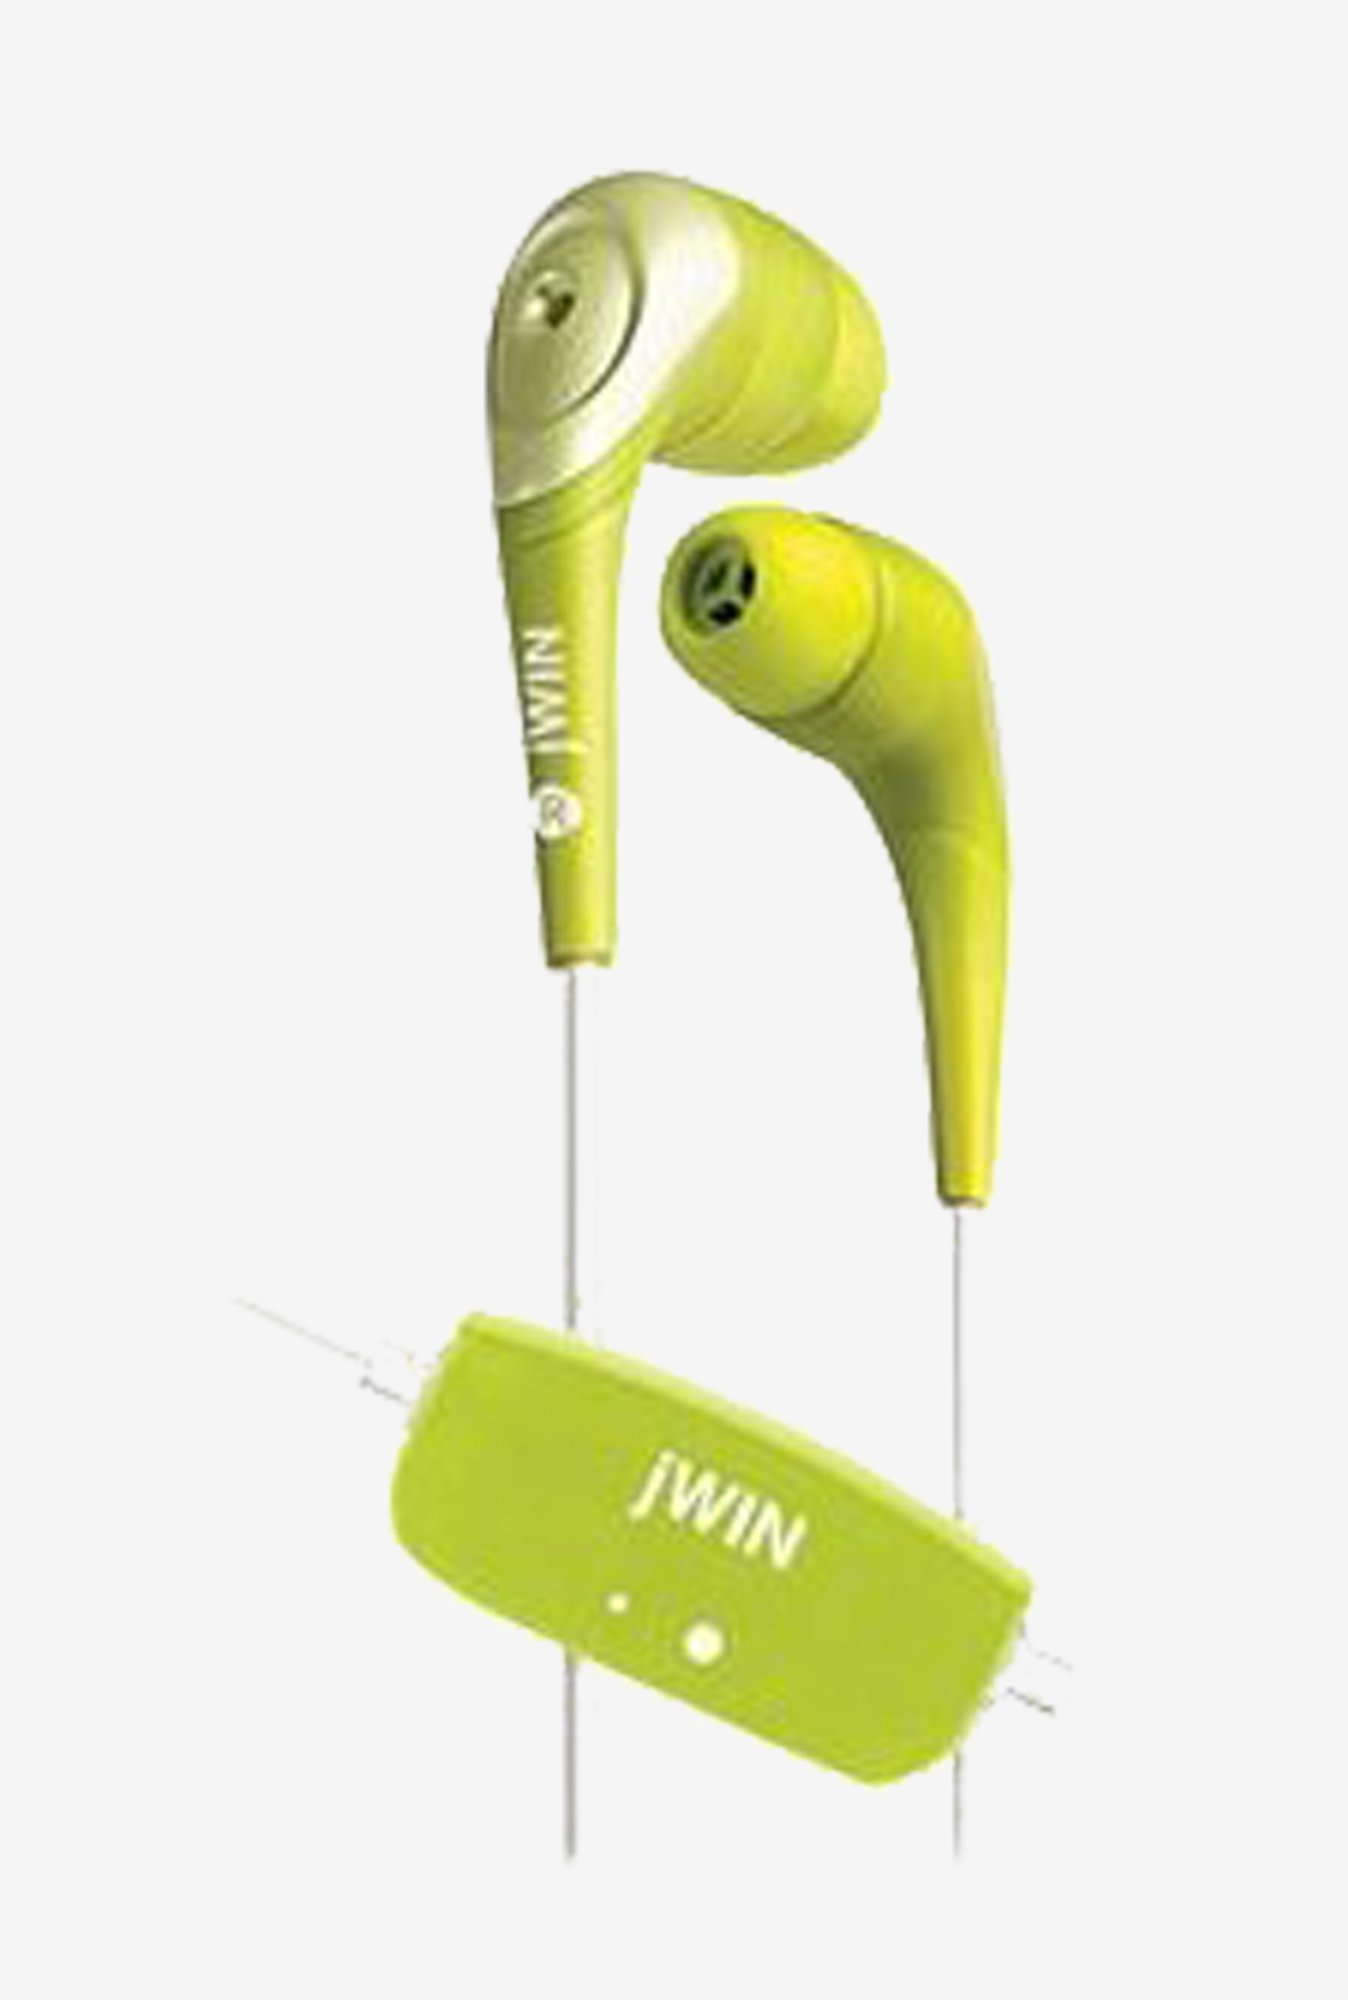 Jwin JHE22GRN Stereo In the Ear Earphones (Green)